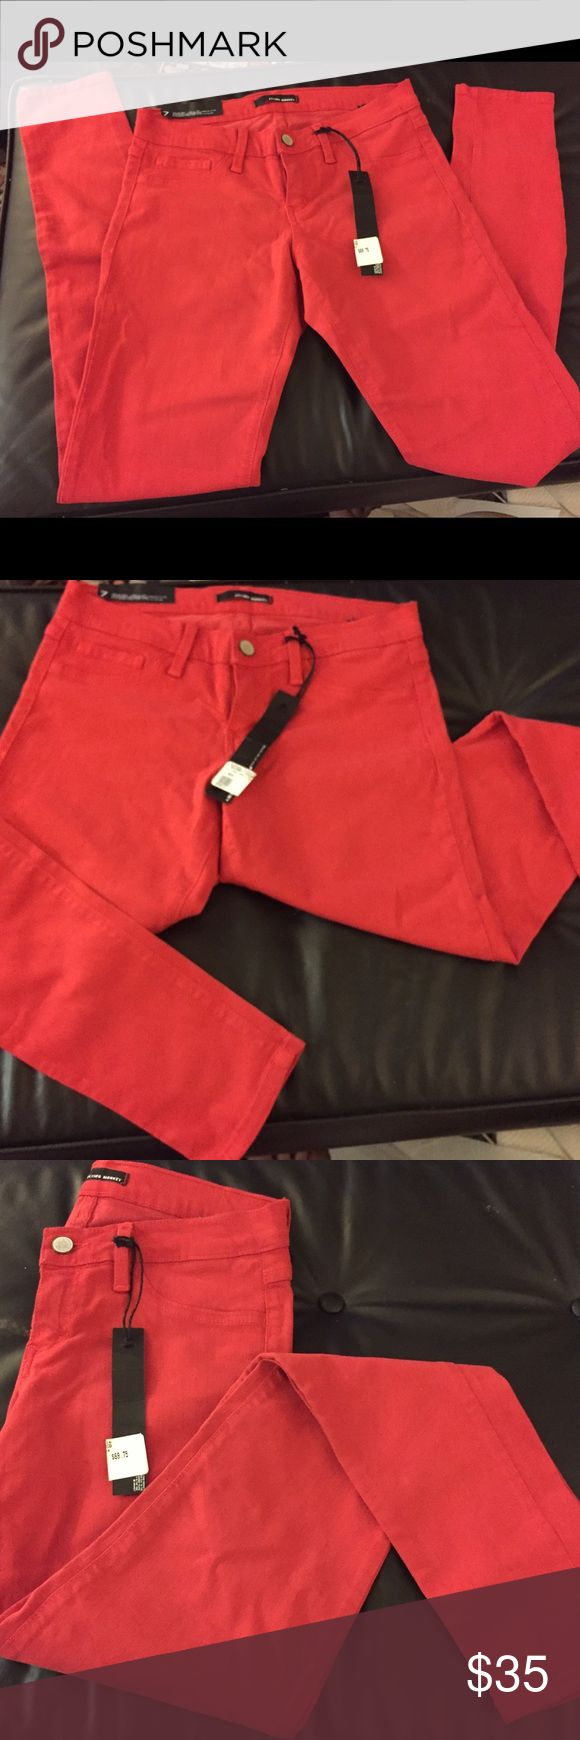 Flying monkey jeans size 7 Nwt  red  flying monkey skinny jeans flying monkey Jeans Skinny